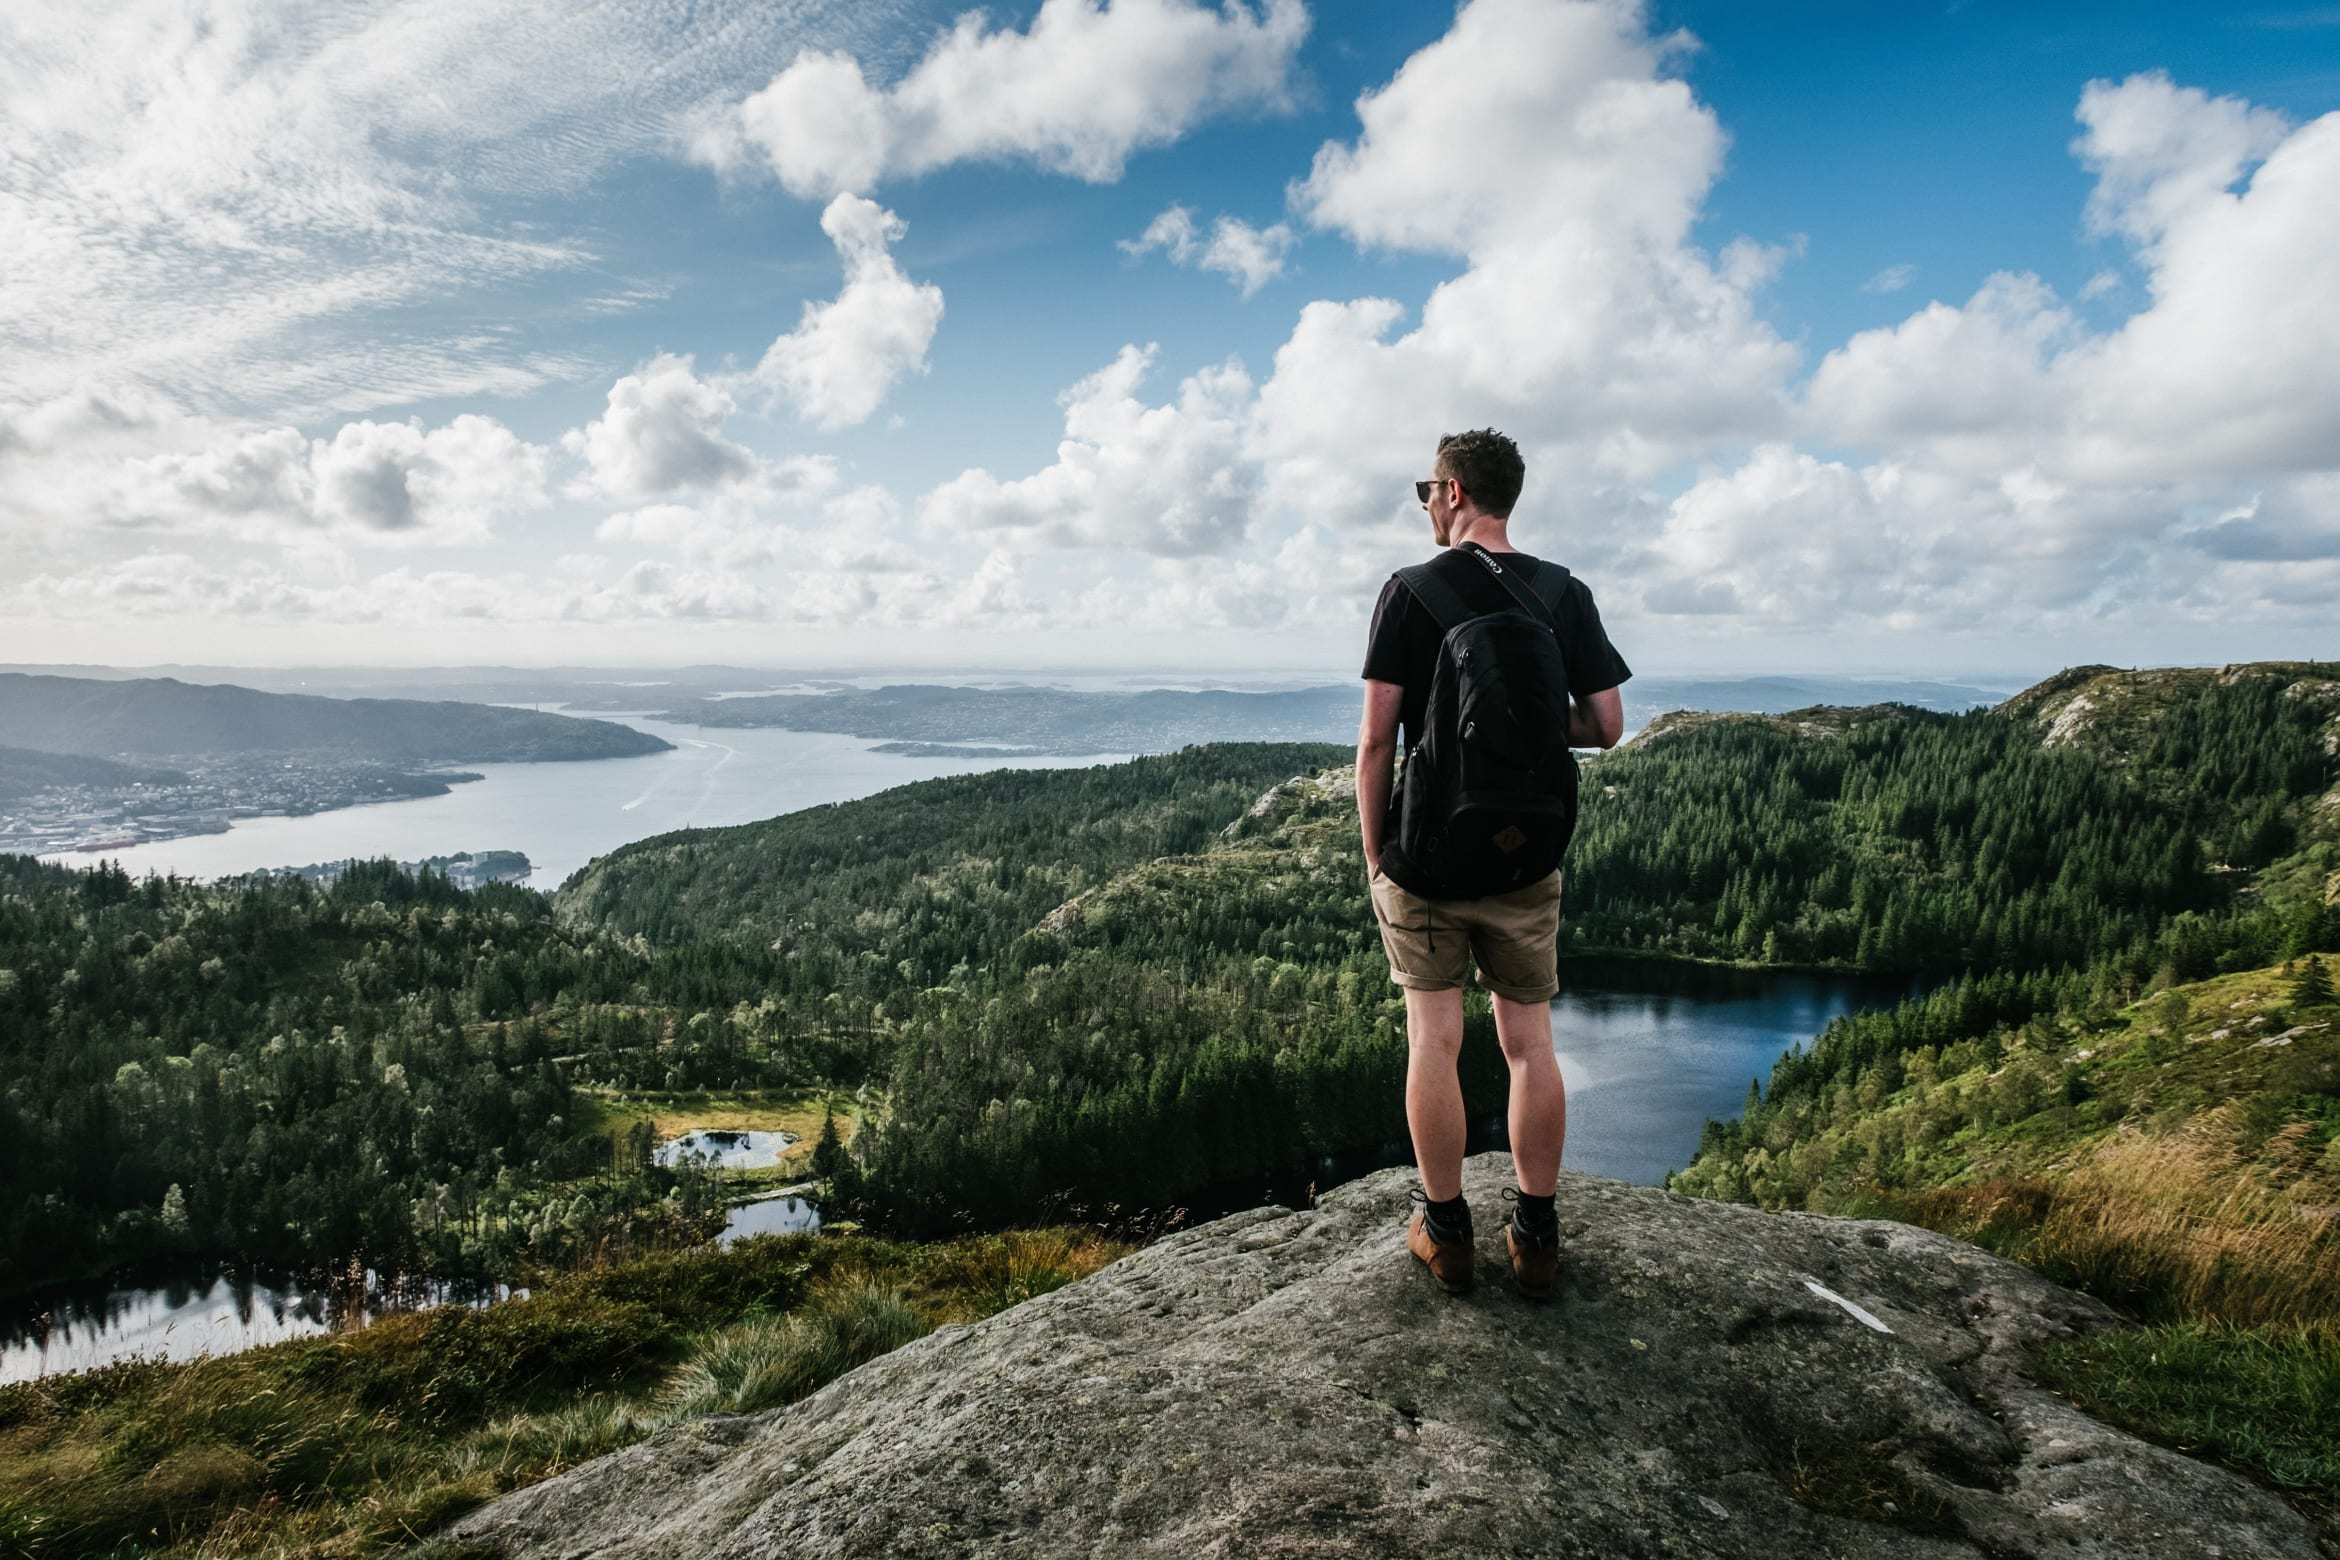 Young man standing on a rock overlooking a breathtaking view of trees and cloudy skies